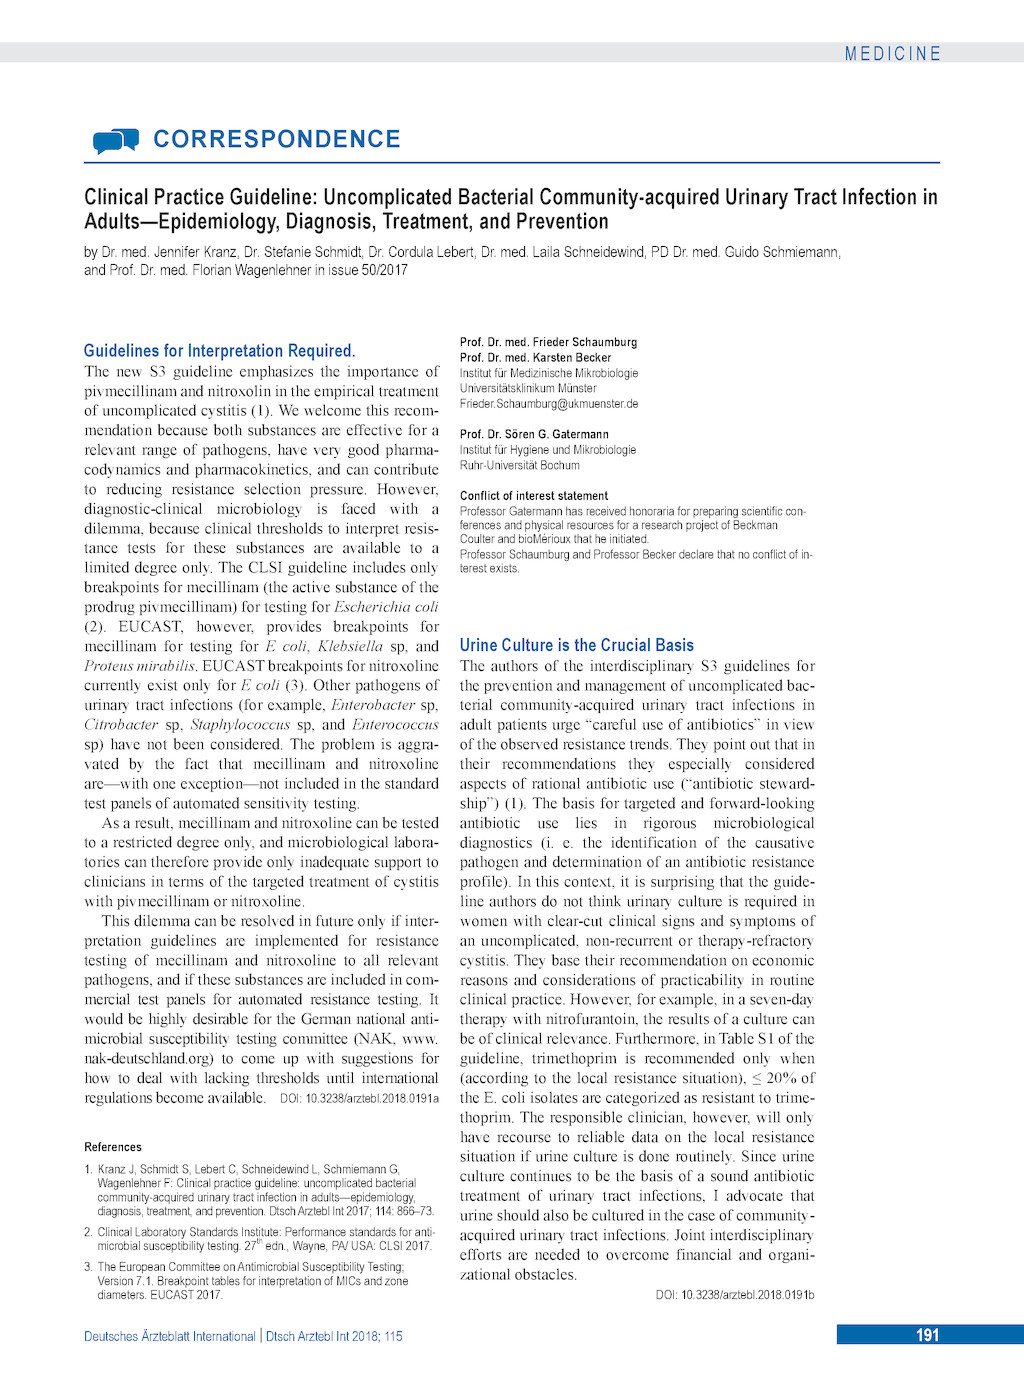 clsi guidelines for antimicrobial susceptibility testing 2015 pdf